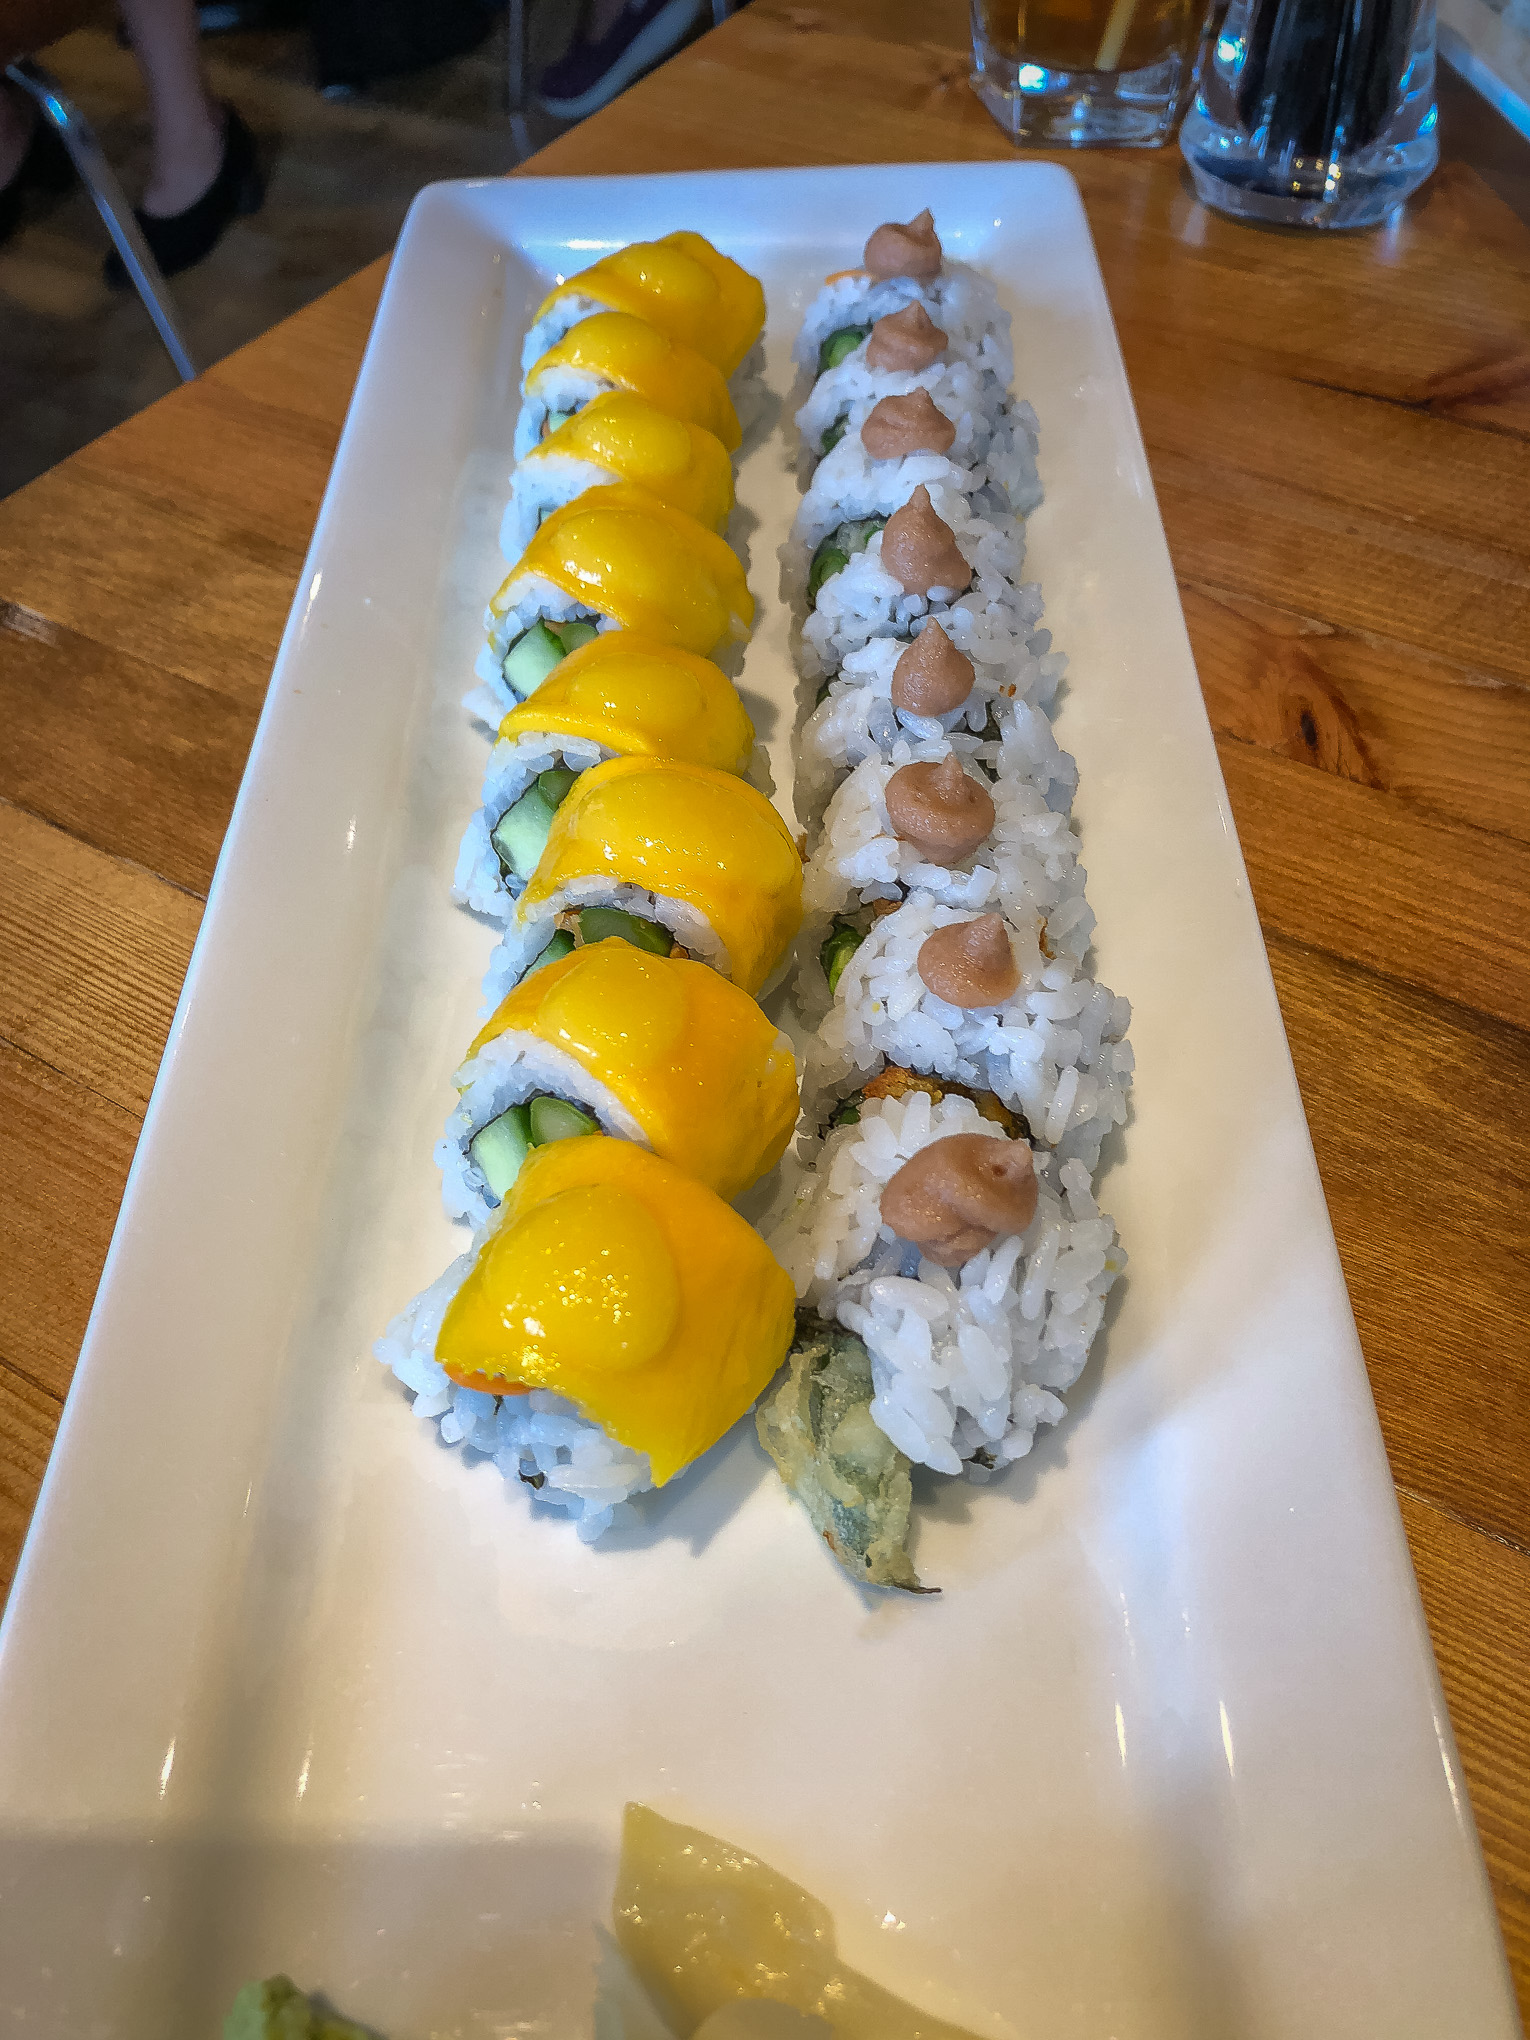 Oblong plate filled with sushi rolls